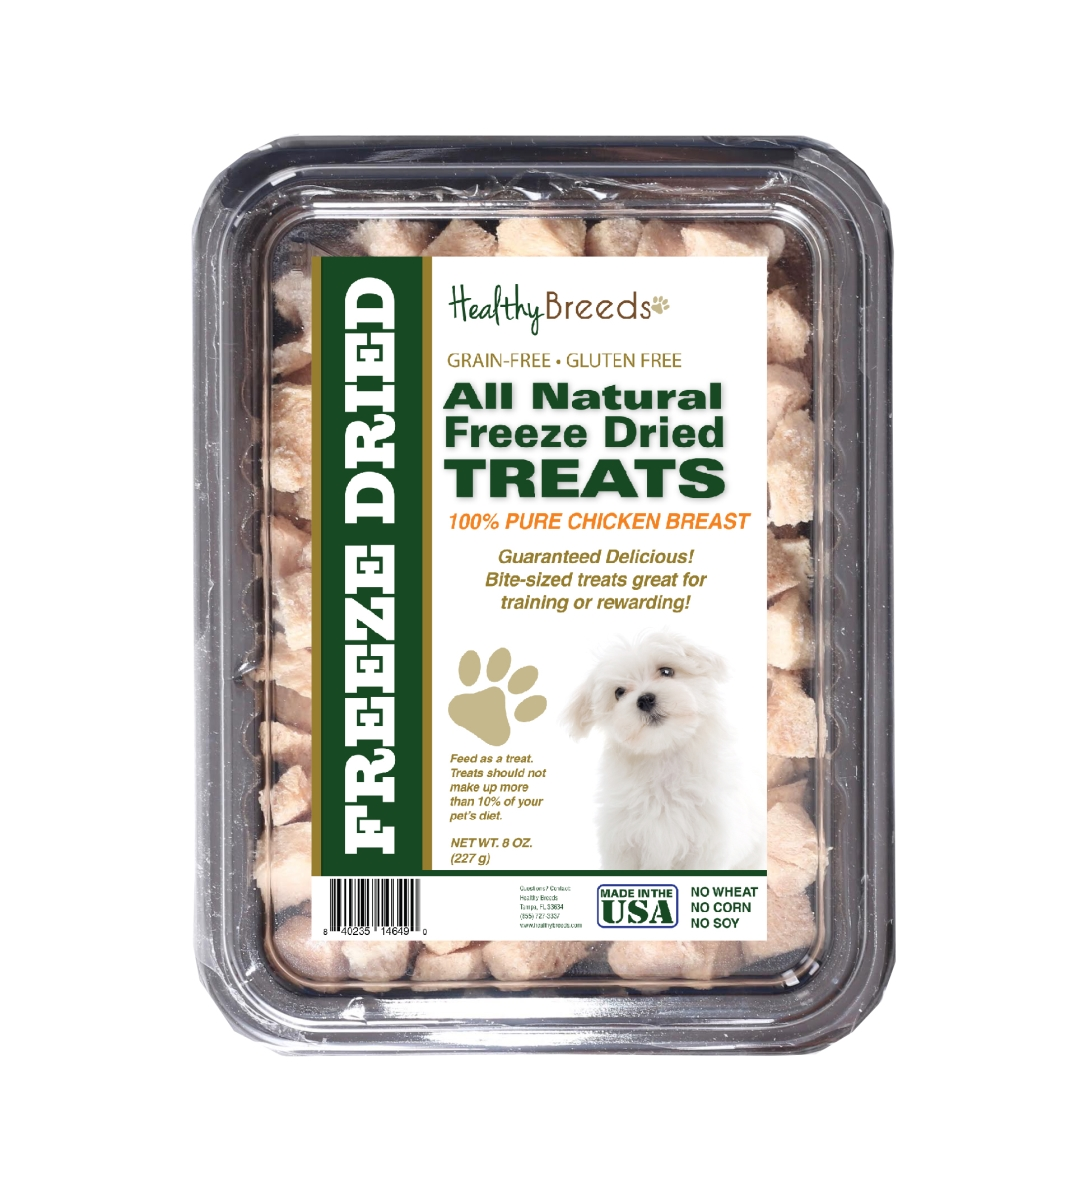 Healthy Breeds 840235146490 8 oz Maltese All Natural Freeze Dried Treats Chicken Breast